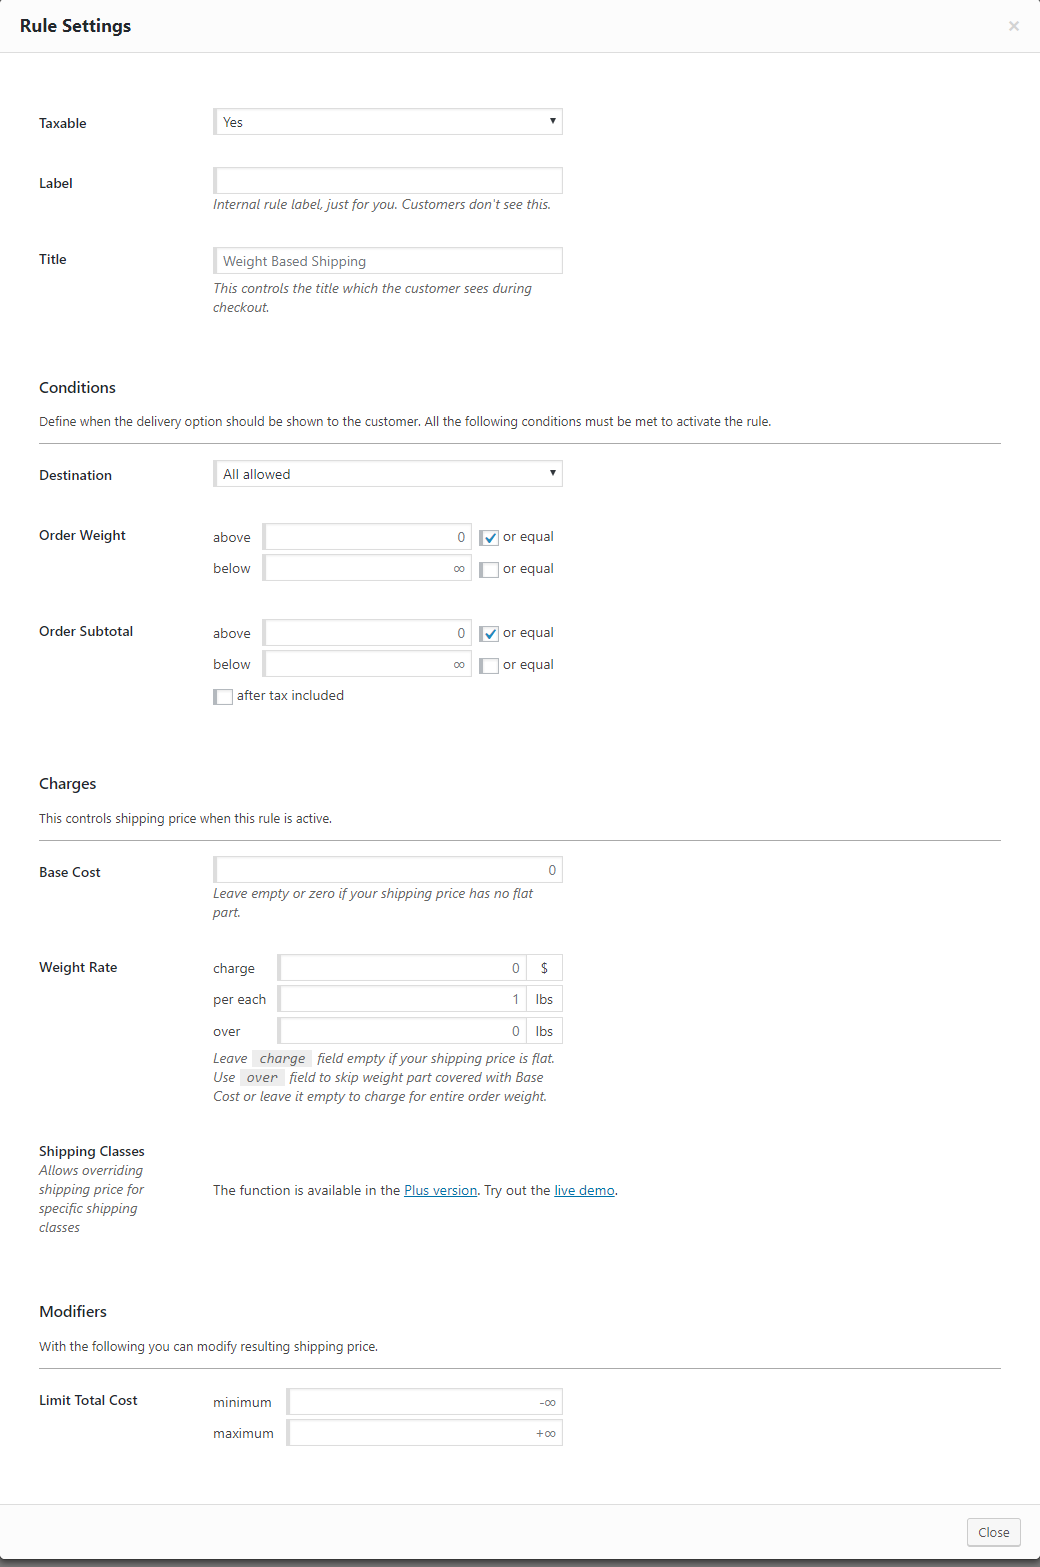 You can set up rules based on order weight, sub total and destination using this plugin